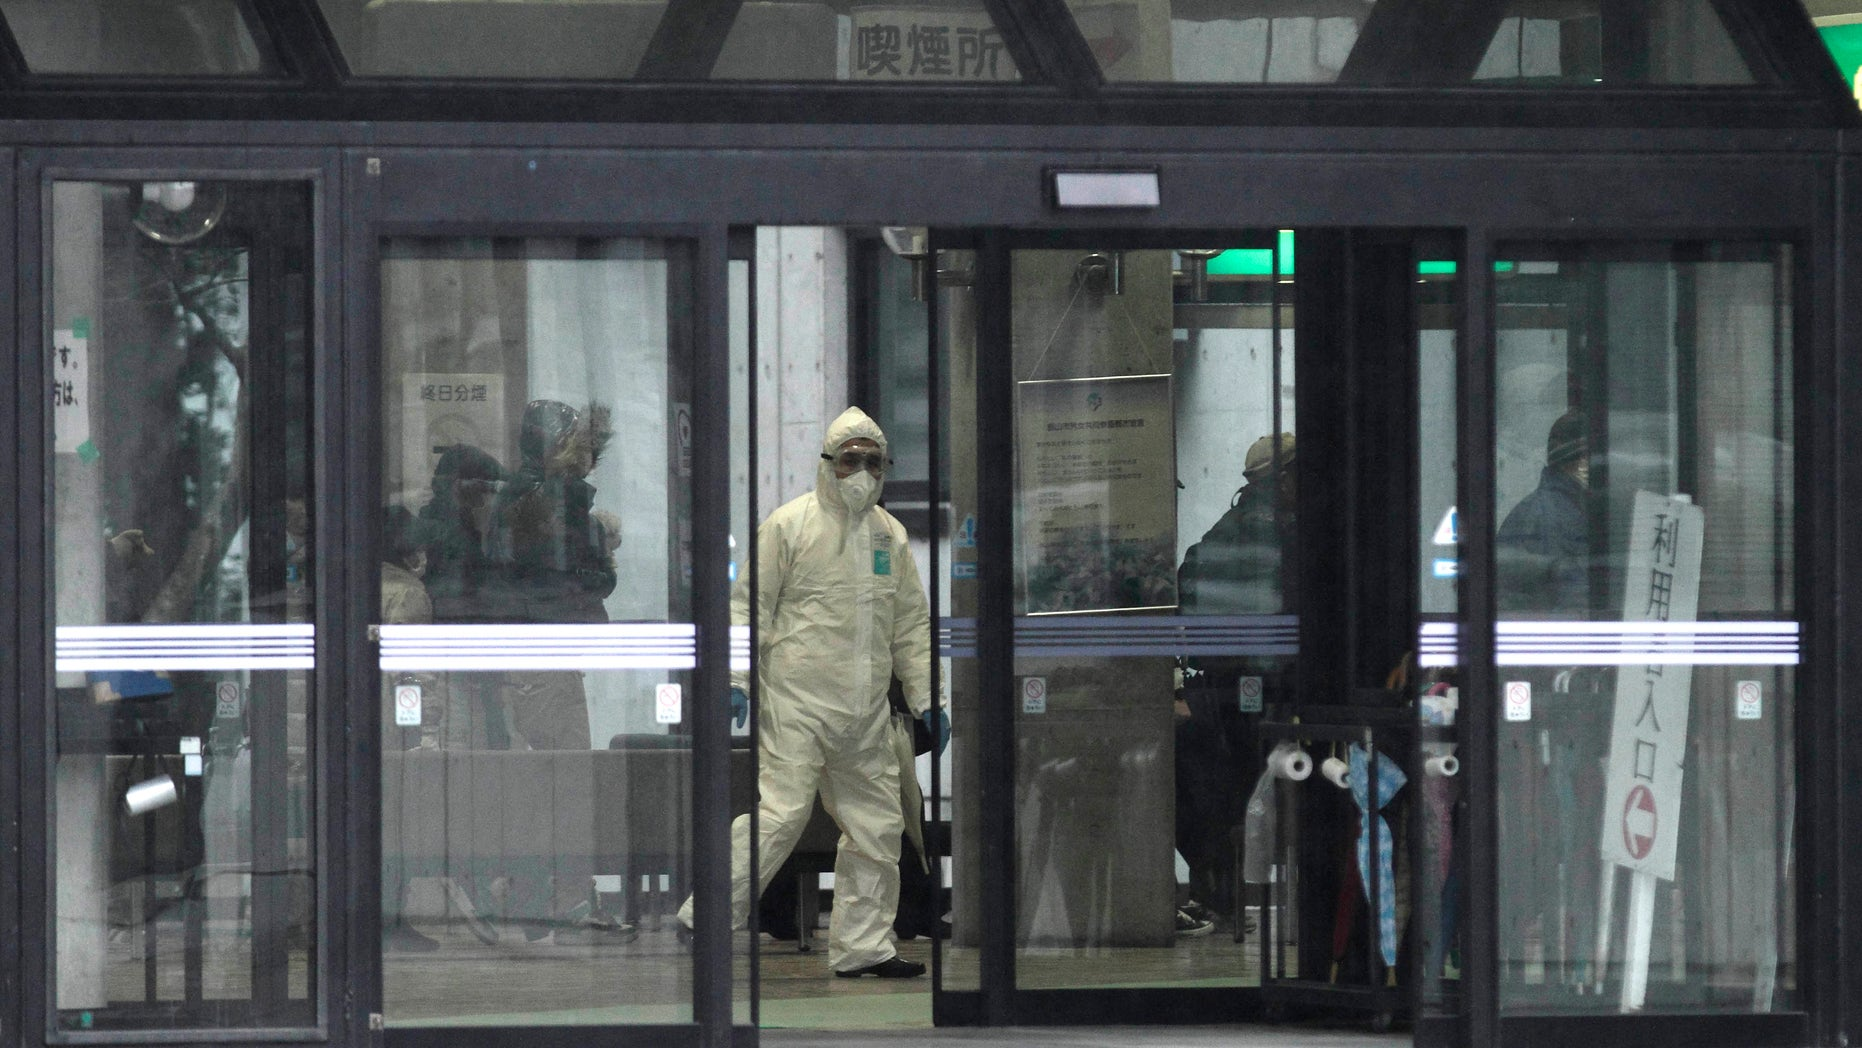 March 15: Officials wearing clothing to protect against radiation work in a center to scan residents who have been within 20 kilometers of the Fukushima Dai-ichi nuclear plant damaged by the March 11 earthquake.A U.S. nuclear industry official says there is evidence that the primary containment structure at one of the stricken Japanese reactors has been breached, raising the risk of further release of radioactive material.